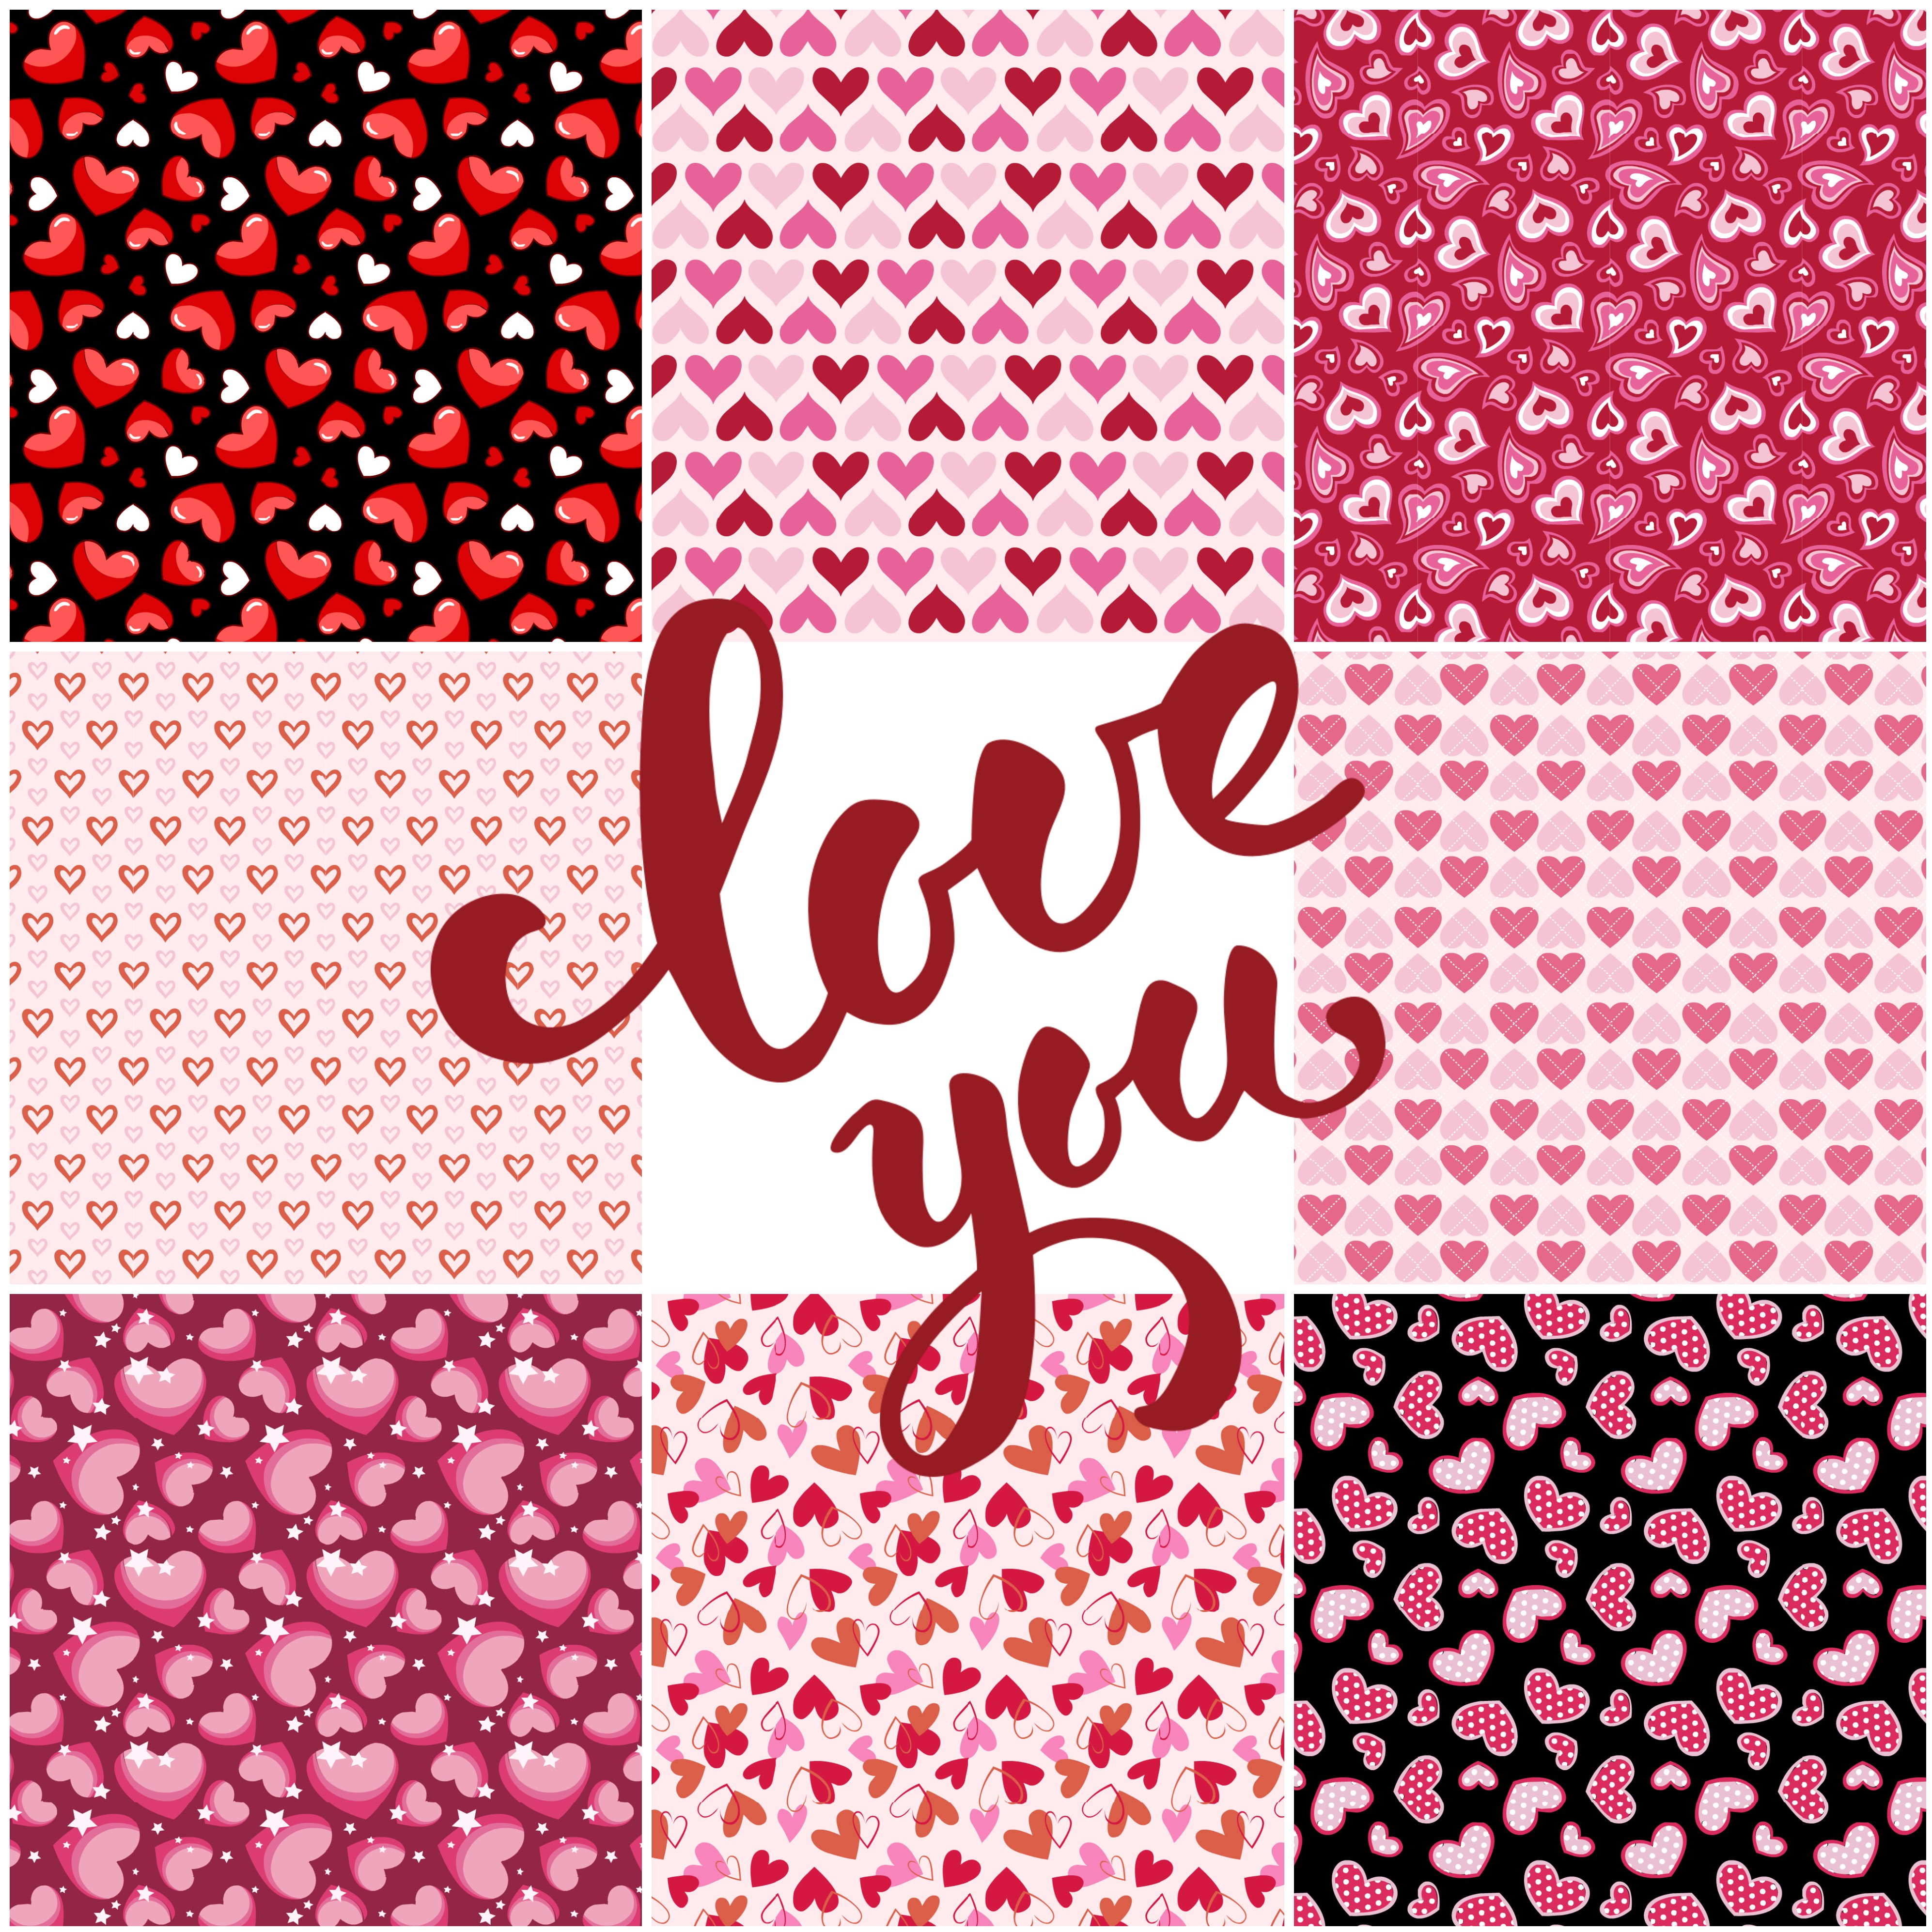 Love you collage.jpg